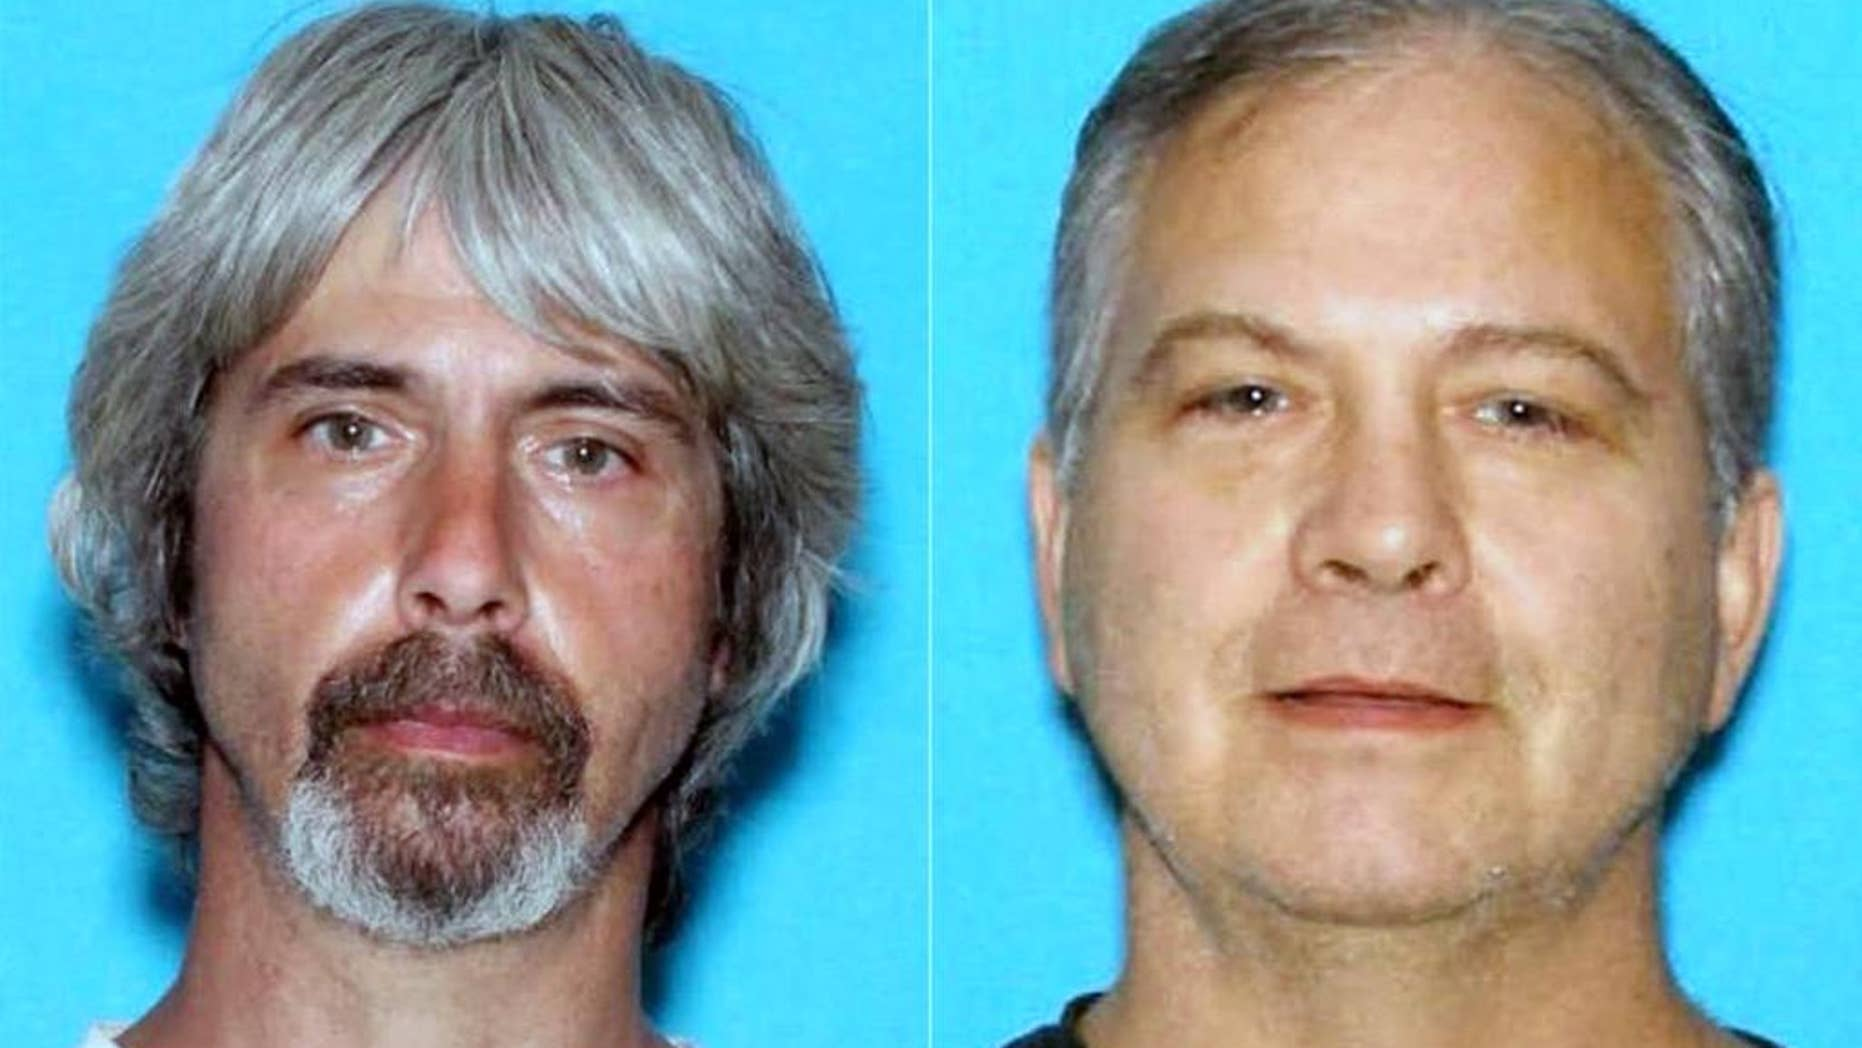 FILE - These undated booking photos provided by the Snohomish County Sheriff Office shows Tony Reed, left and John Reed. Authorities say one of two brothers who were charged with murder in the presumed killing of a missing Washington state couple, Patrick Shunn and his wife, Monique Patenaude, has been taken into custody in San Diego. Snohomish County Sheriff's Office spokeswoman Shari Ireton says 49-year-old Tony Clyde Reed crossed into the United States from Mexico and was arrested Monday, May 16, 2016, by U.S. Marshals in San Diego.  (Snohomish County Sheriff Office via AP, File )